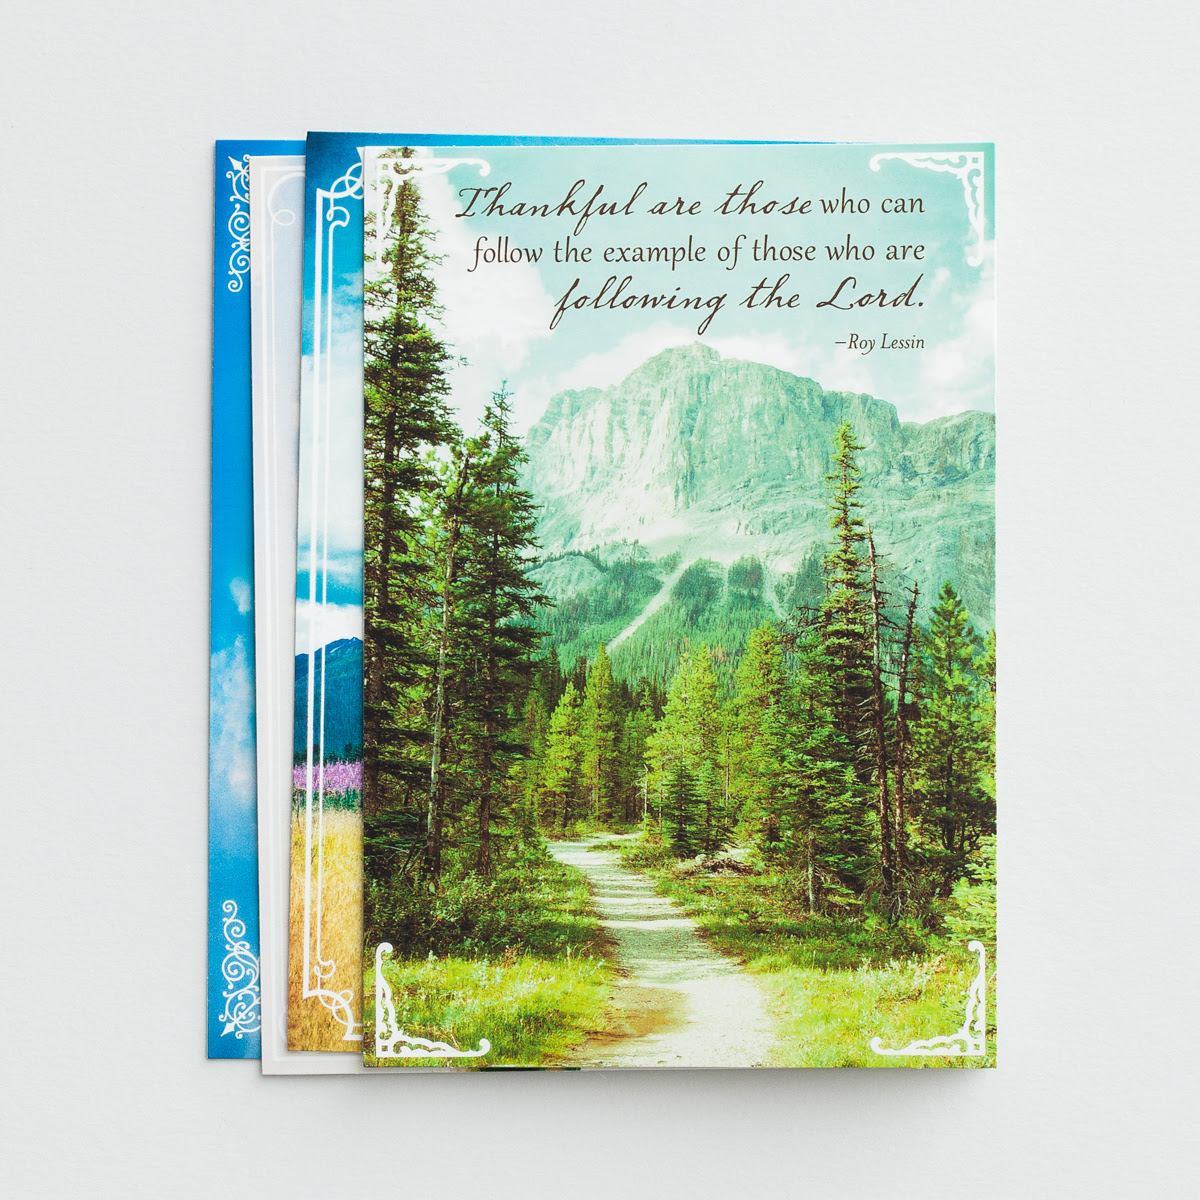 Roy Lessin - Ministry Appreciation - Meet Me in the Meadow - 12 Boxed Cards